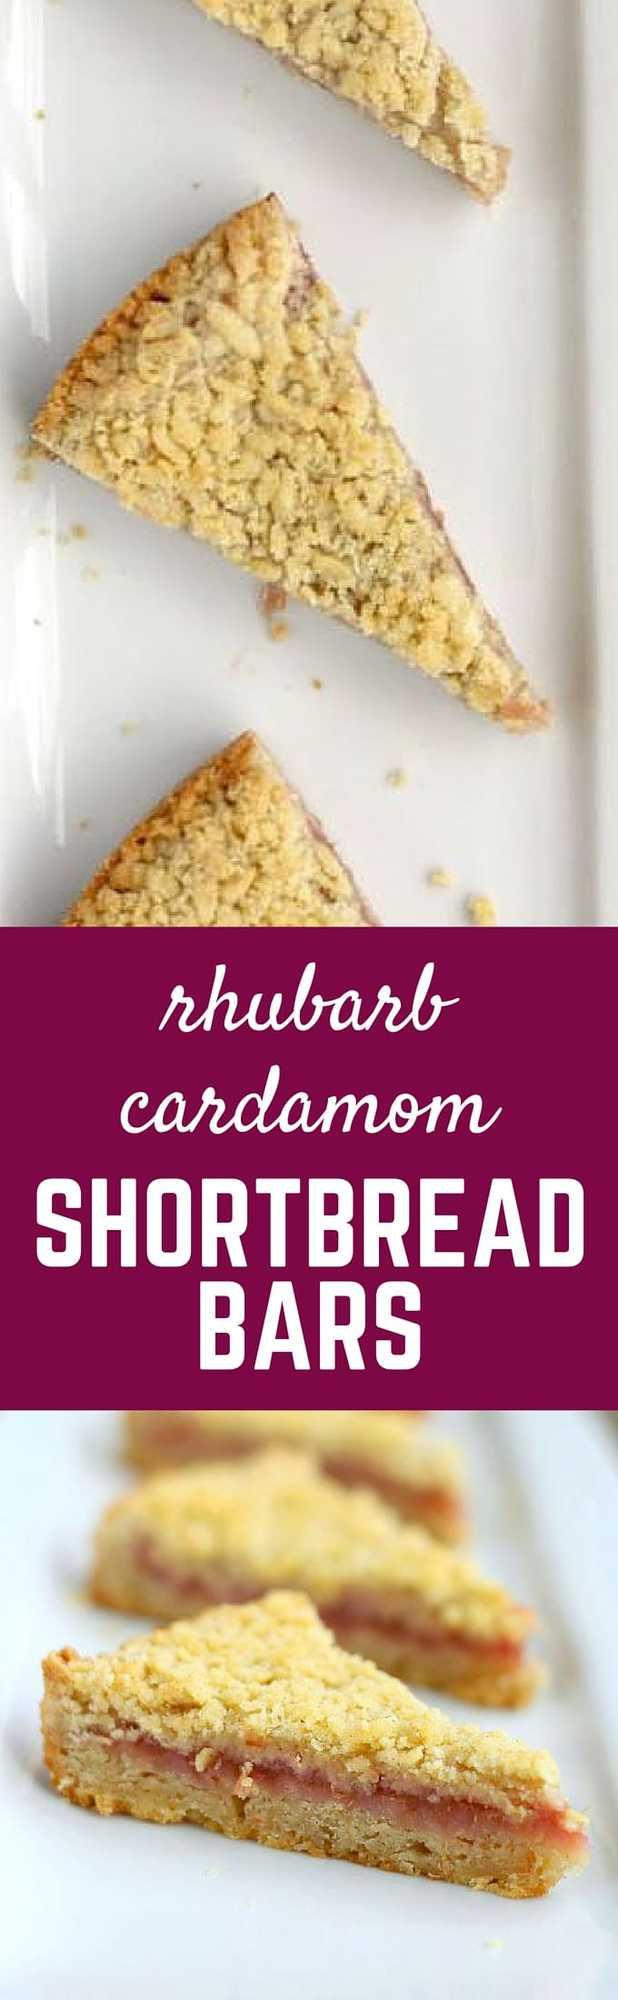 Rhubarb Cardamom Shortbread Bars - a classy, flavorful shortbread bar...perfect for brunches! Get the recipe on RachelCooks.com!